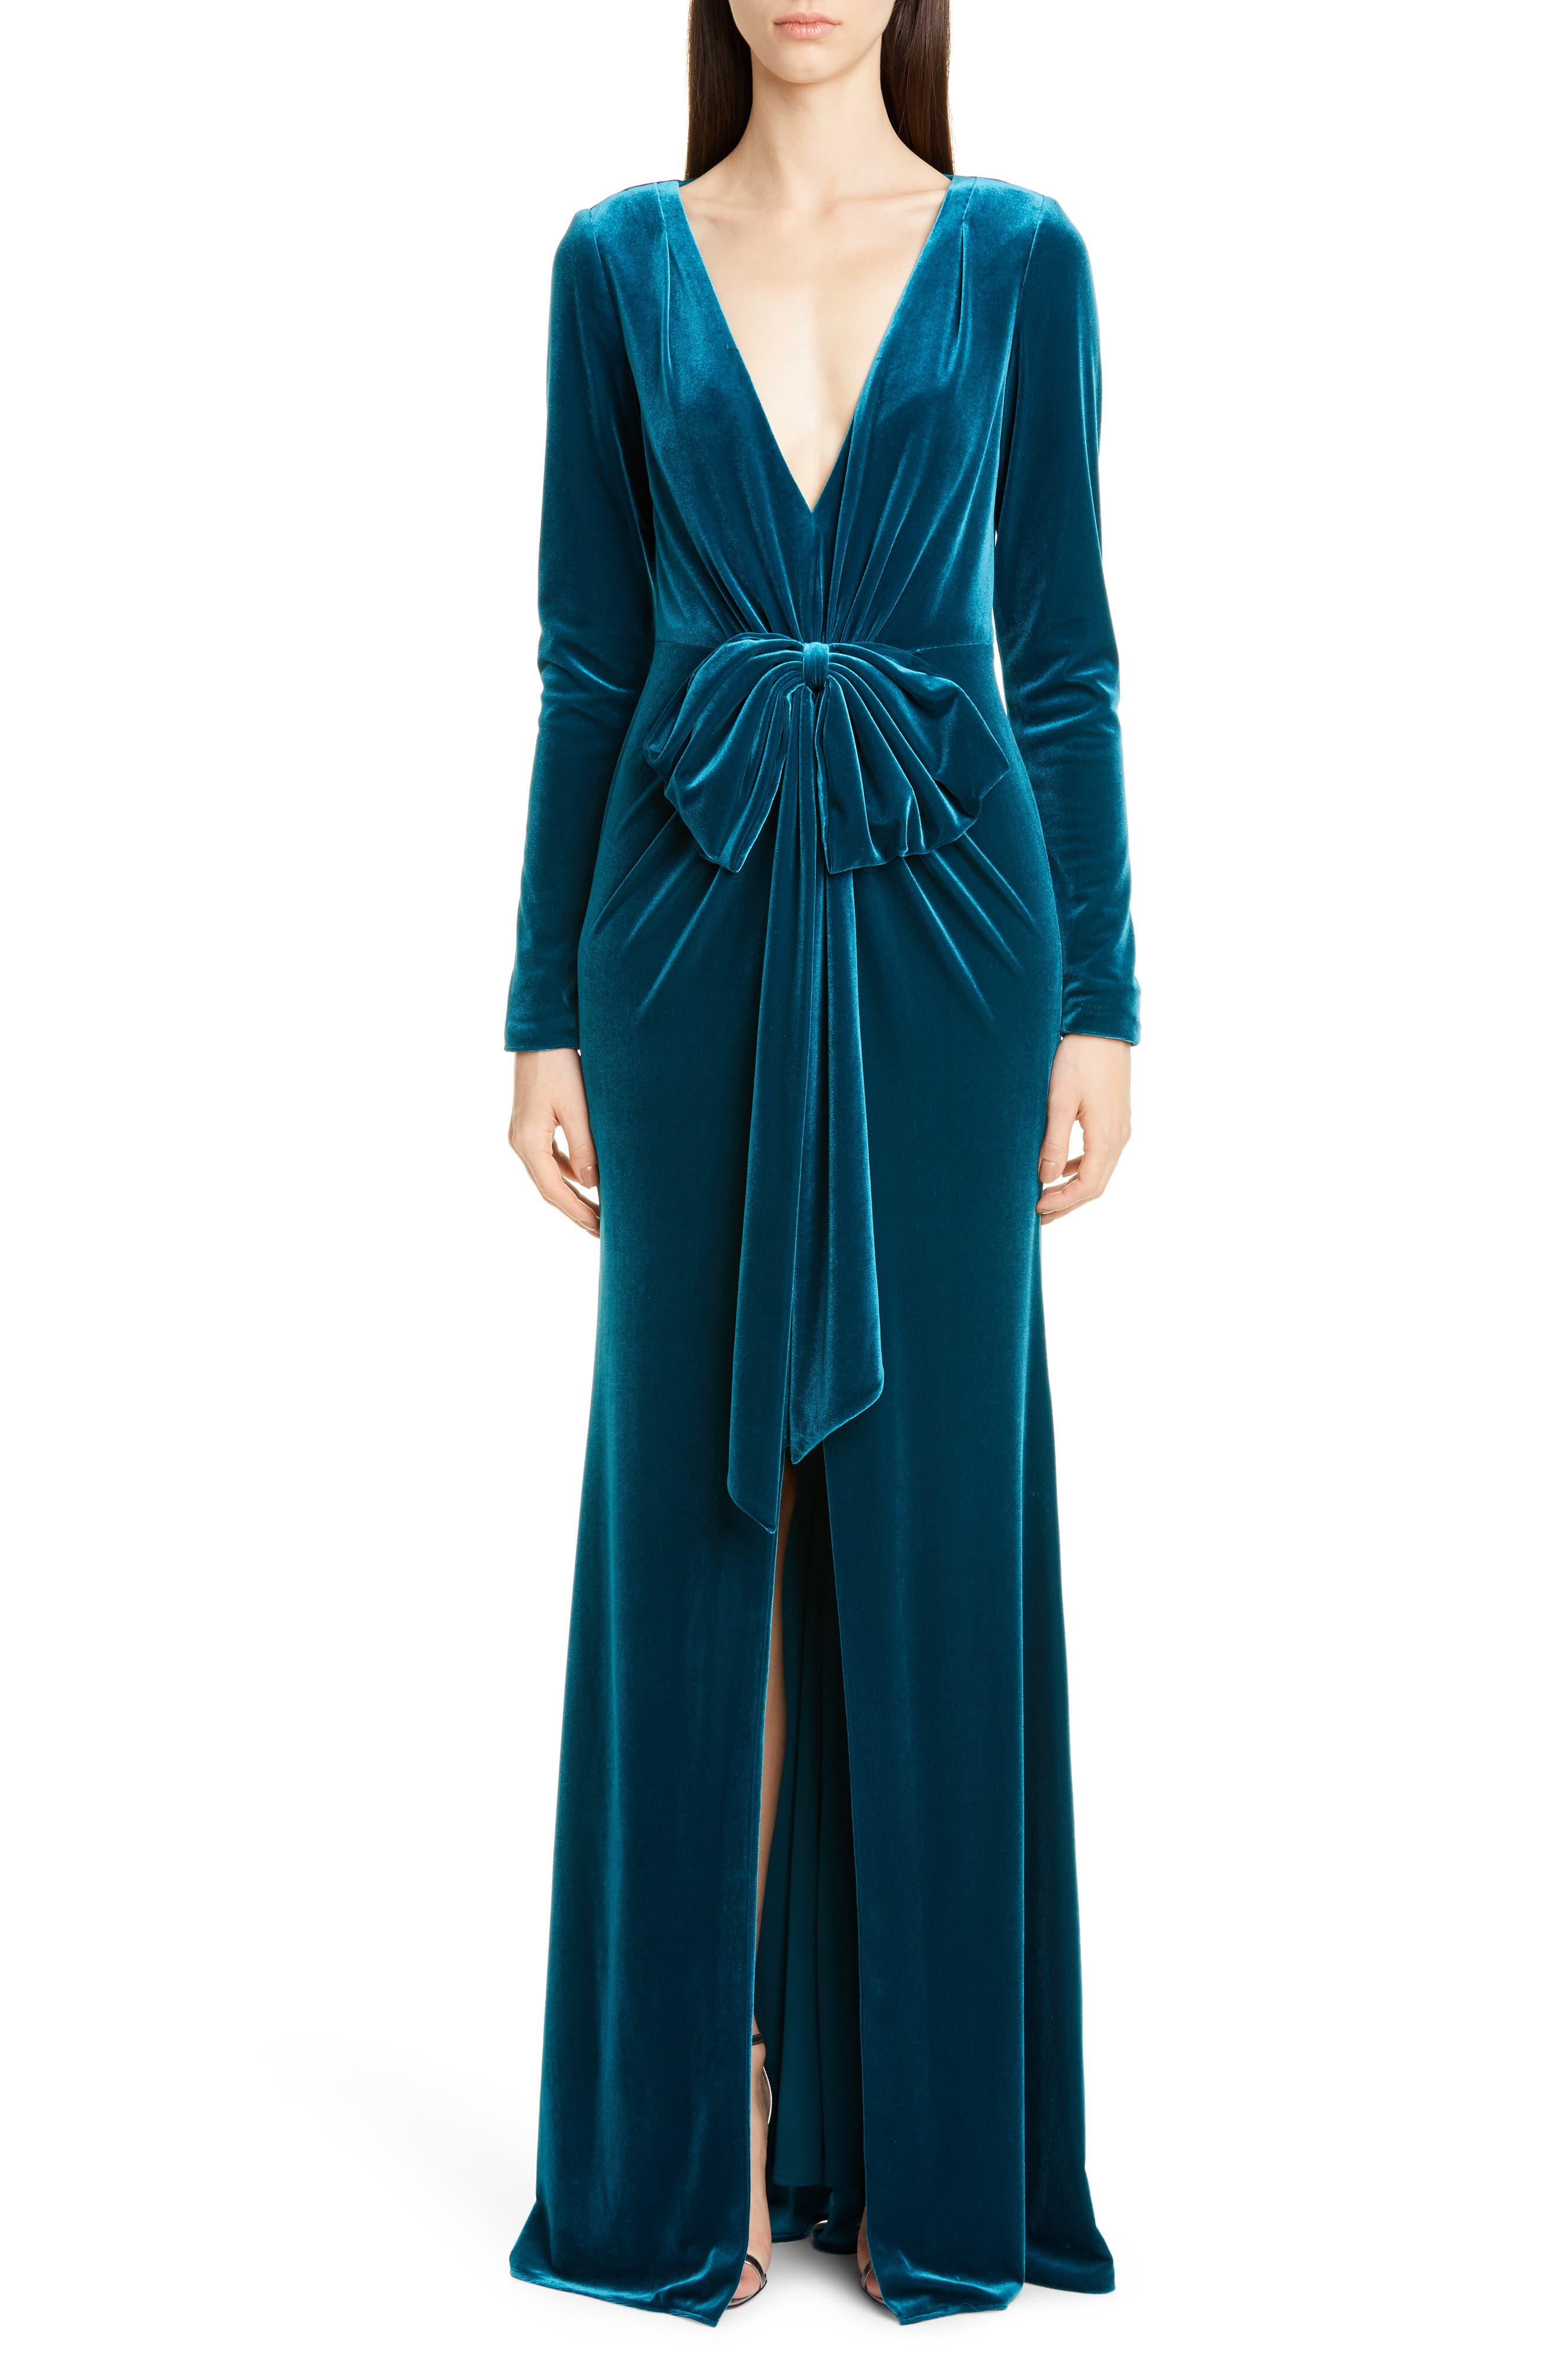 1920s Formal Dresses & Evening Gowns Guide Womens Badgley Mischka Collection Bow Front Long Sleeve Velvet Gown $695.00 AT vintagedancer.com